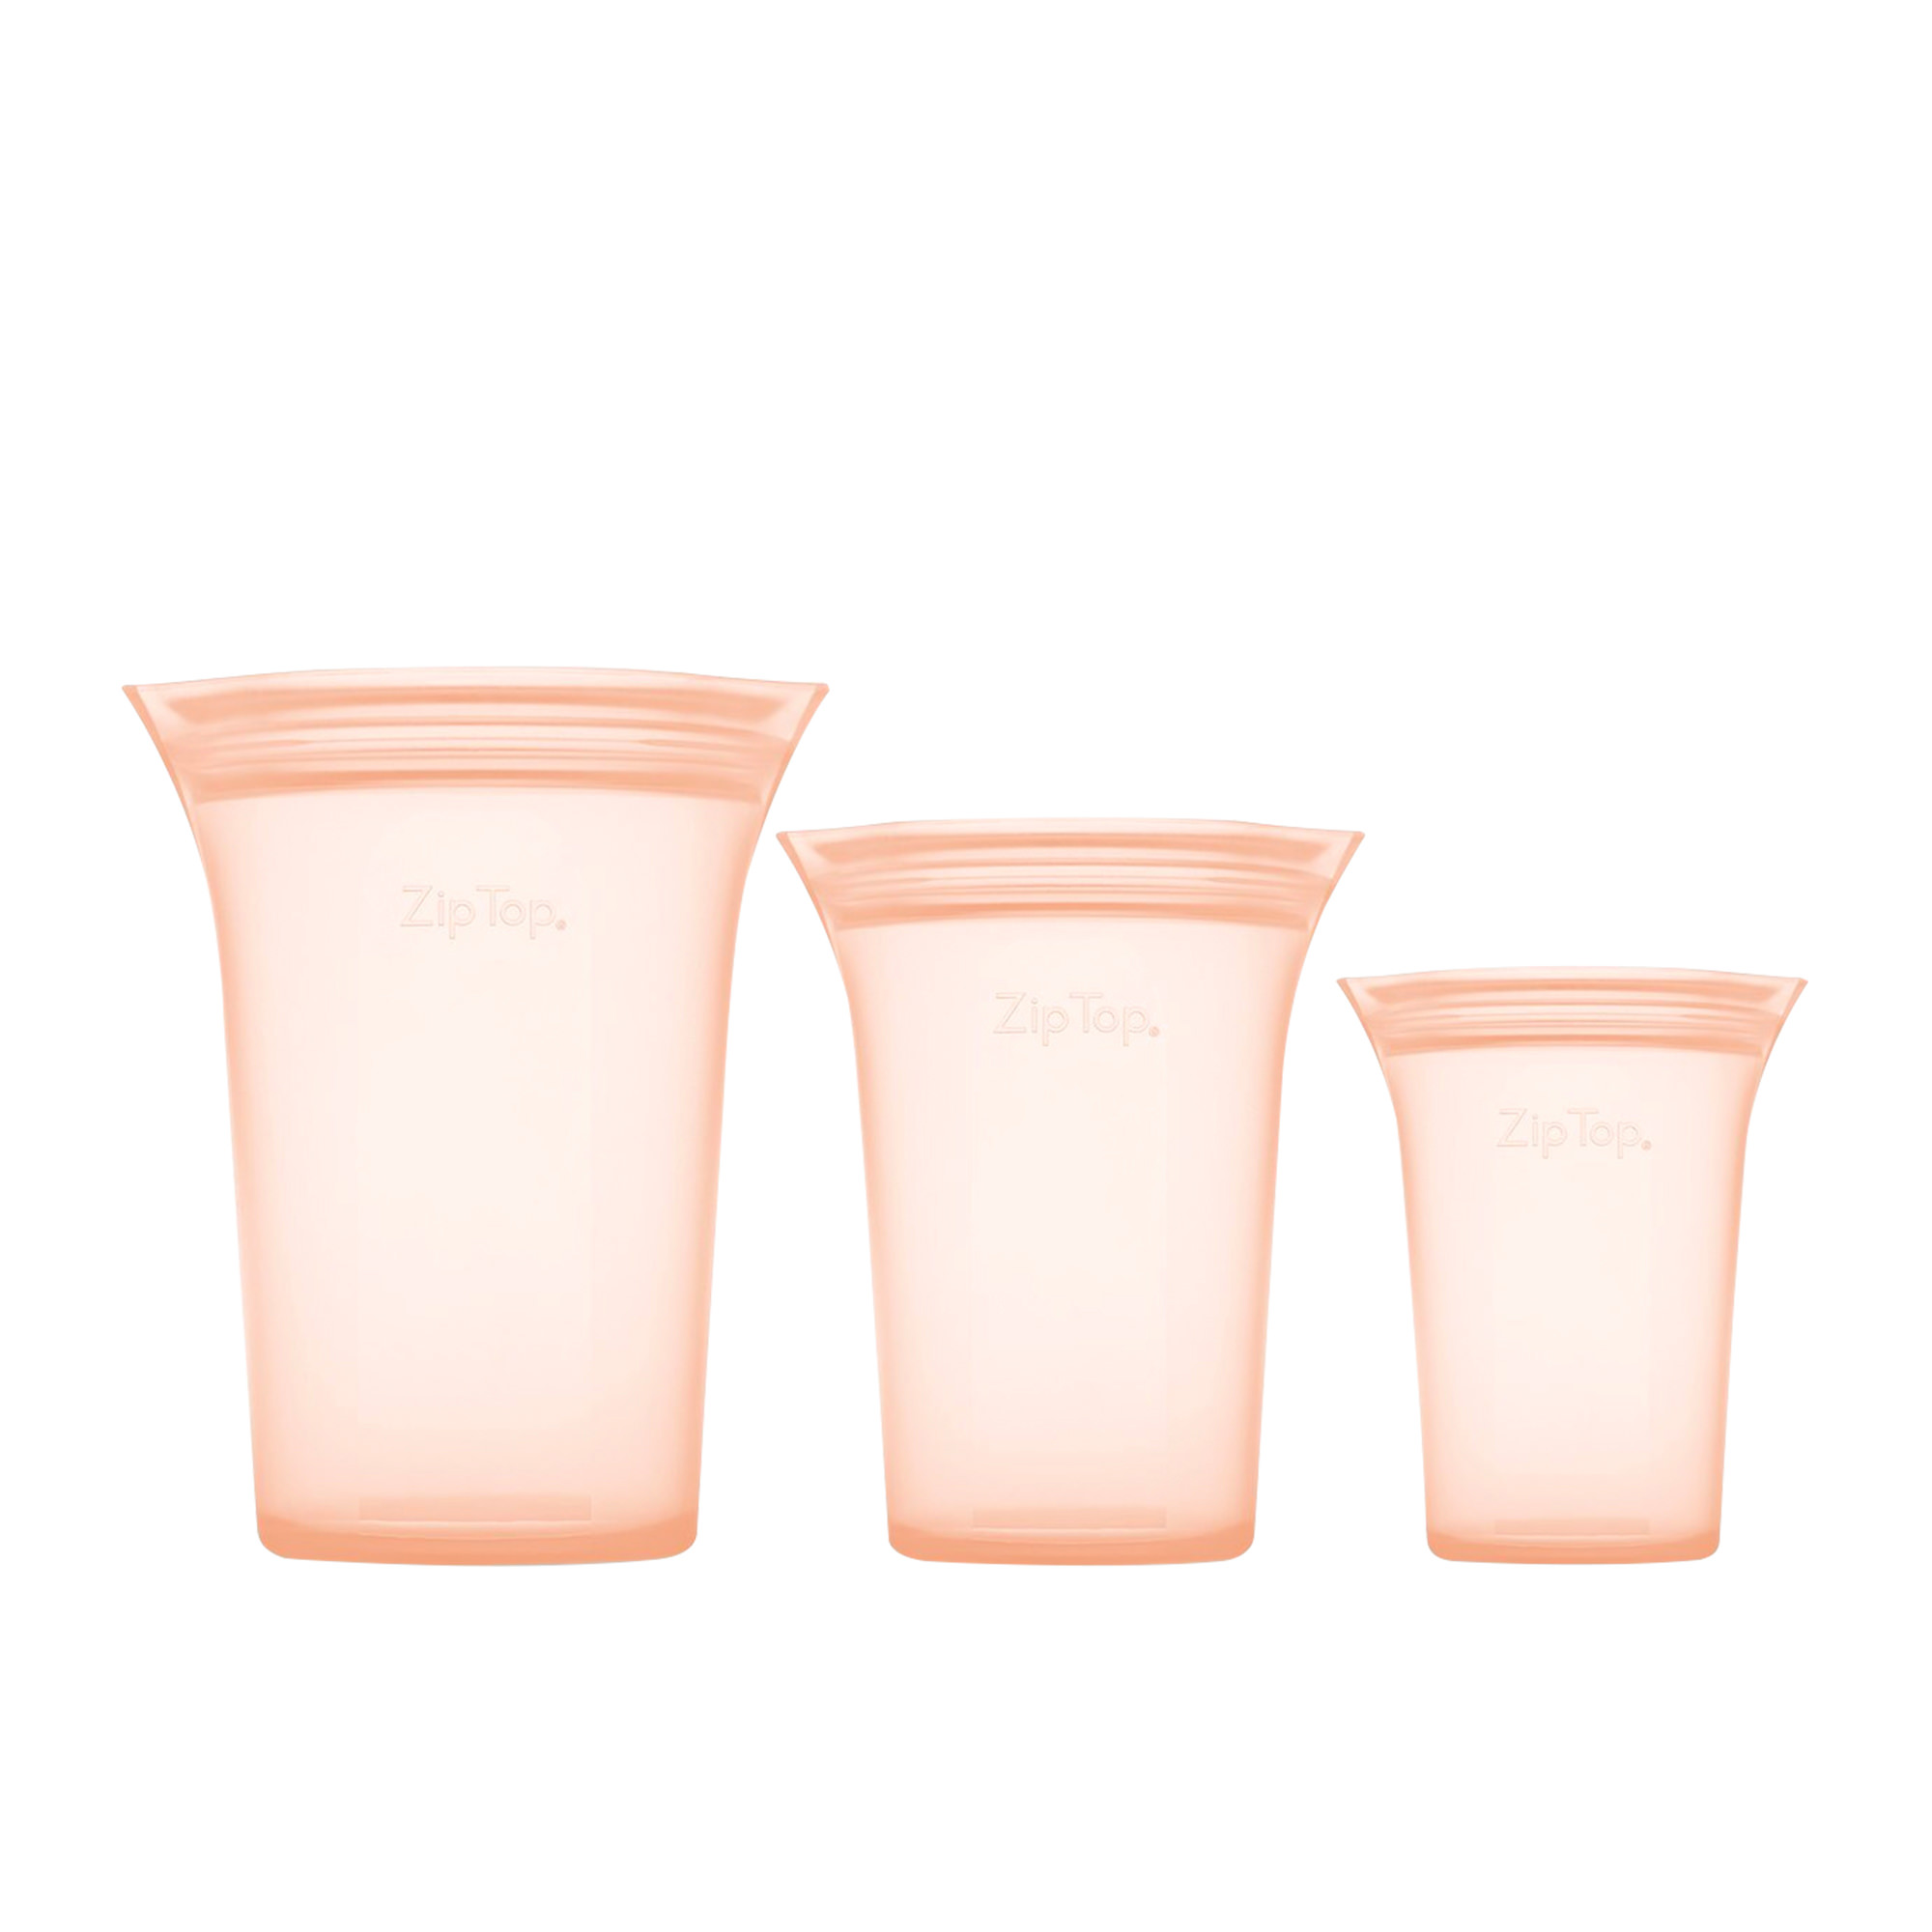 Zip Top 3pc Platinum Silicone Cup Container Set Peach